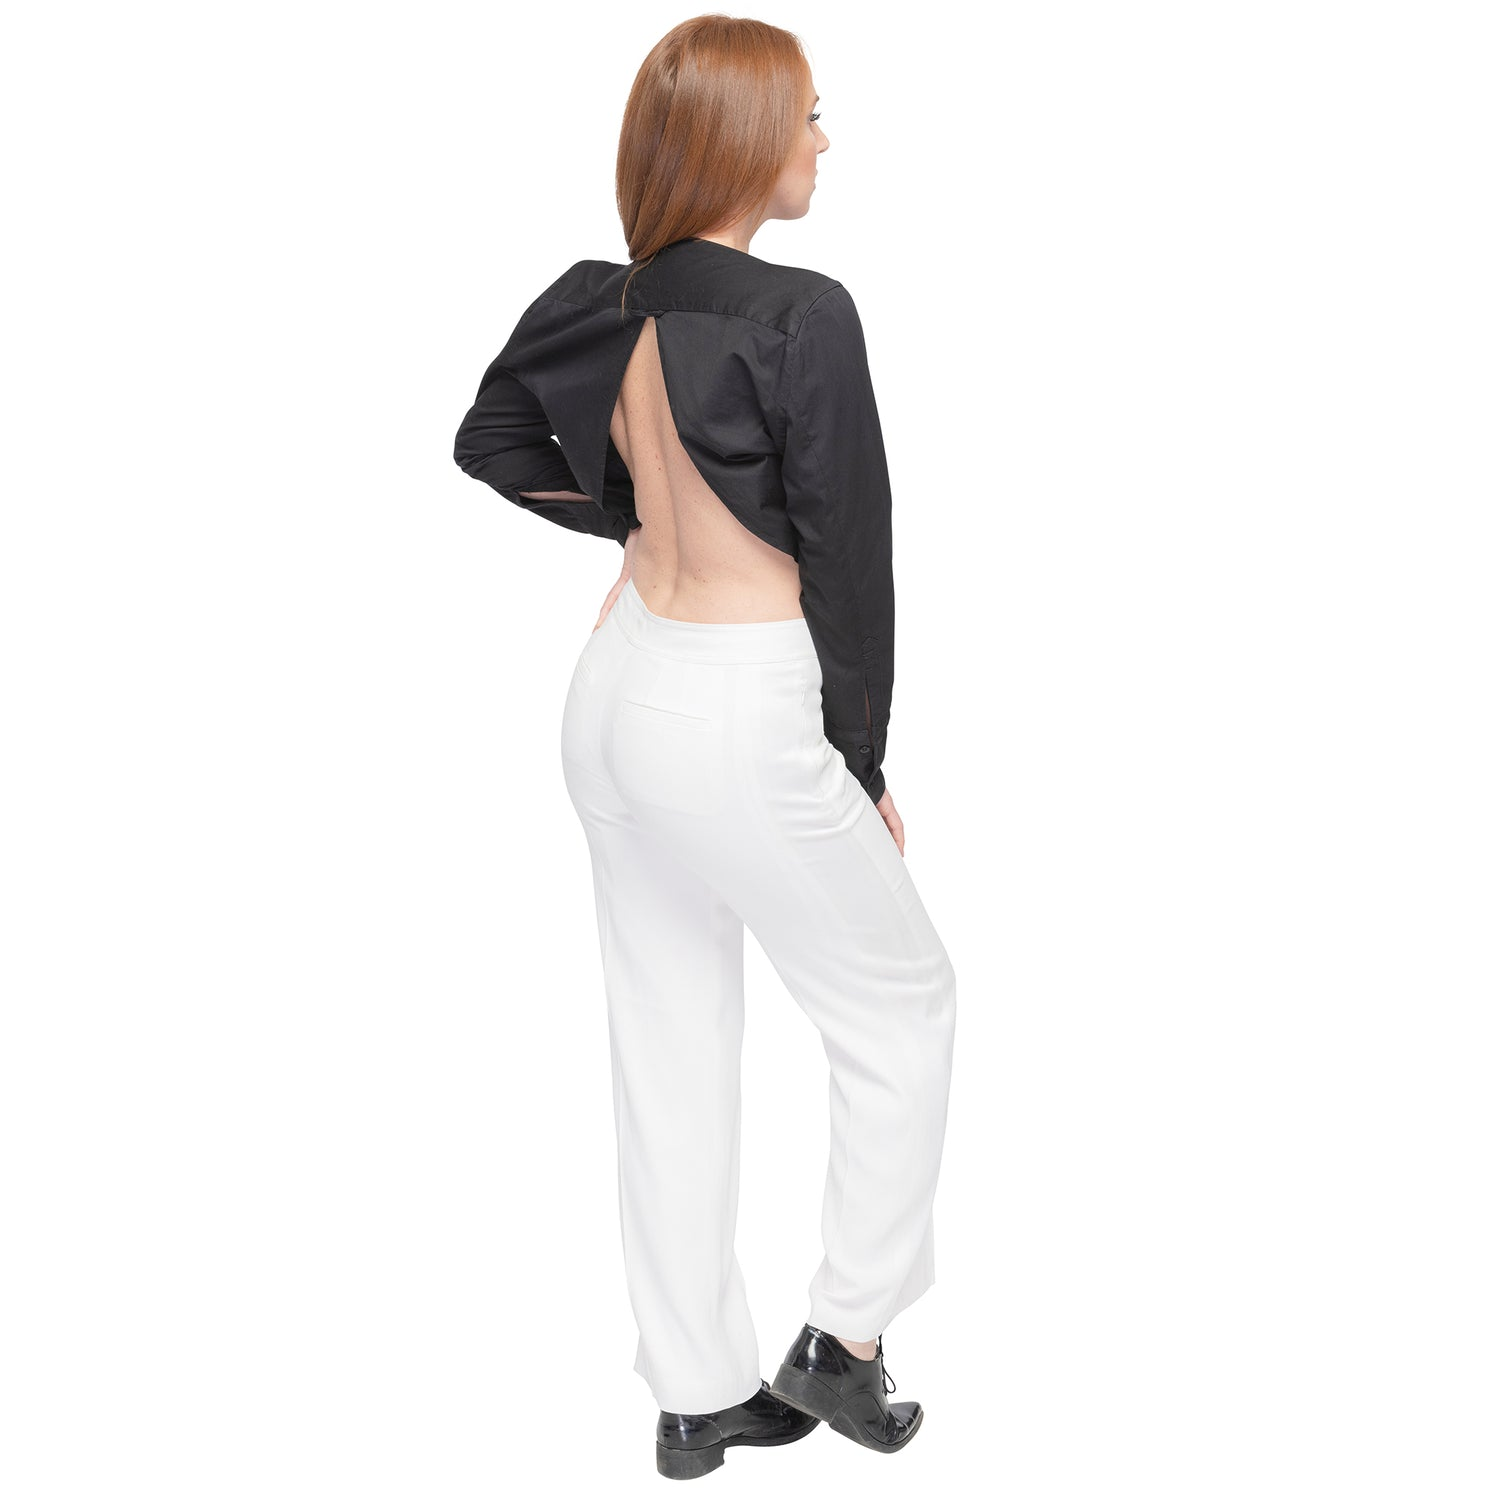 Women's Long Sleeve Top with Open Back in Black - casacomostyle